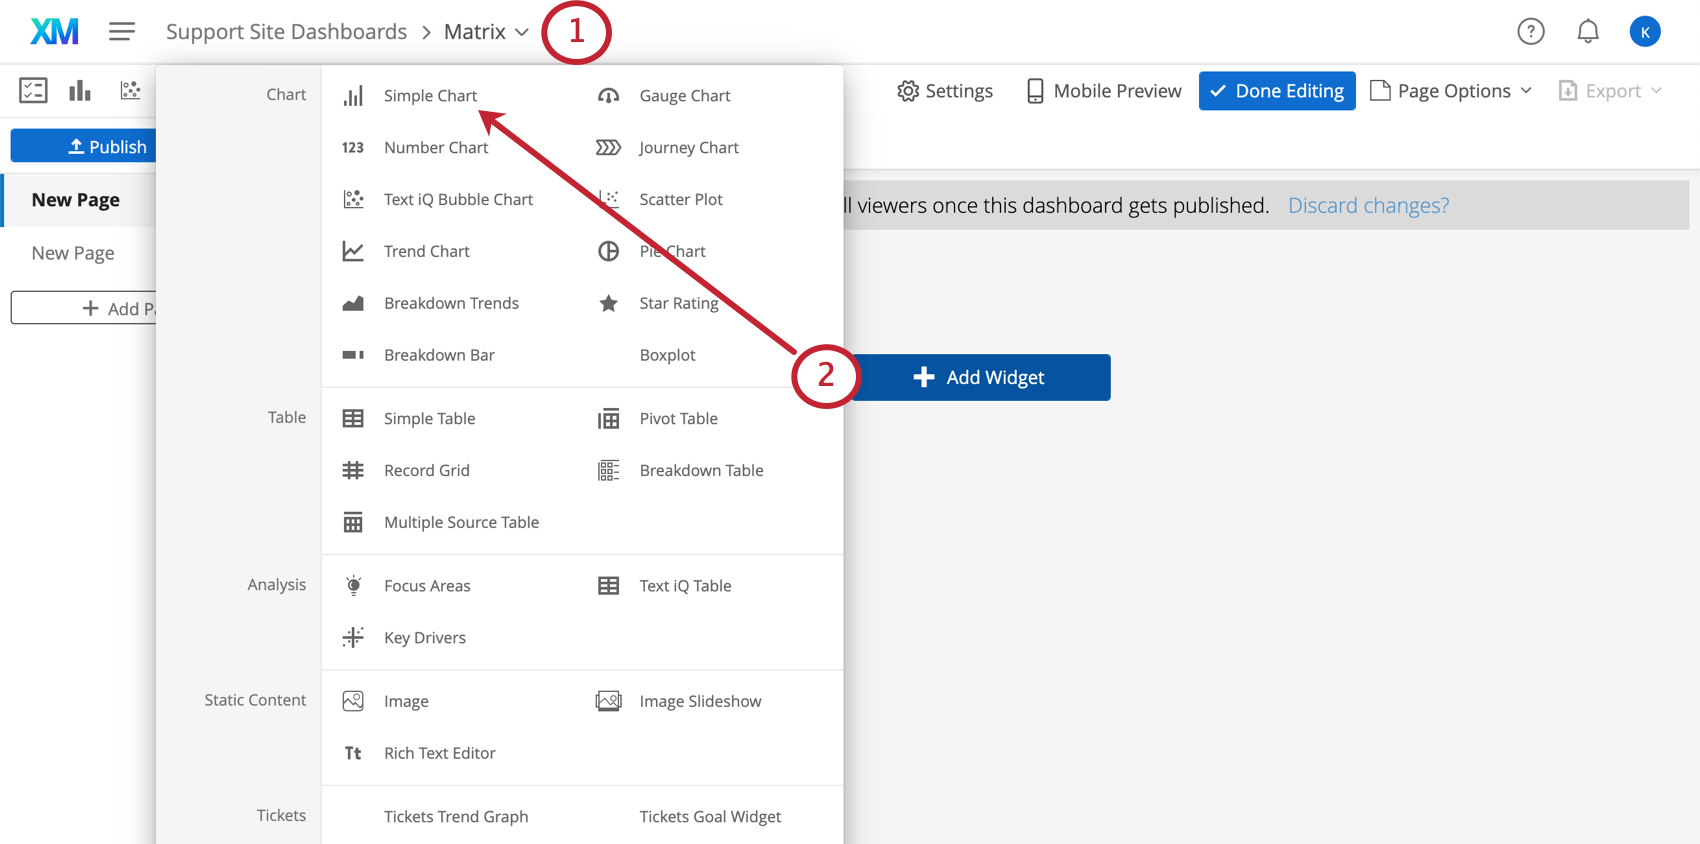 On the dashboard, the add widget button is clicked and the simple chart option is literally first